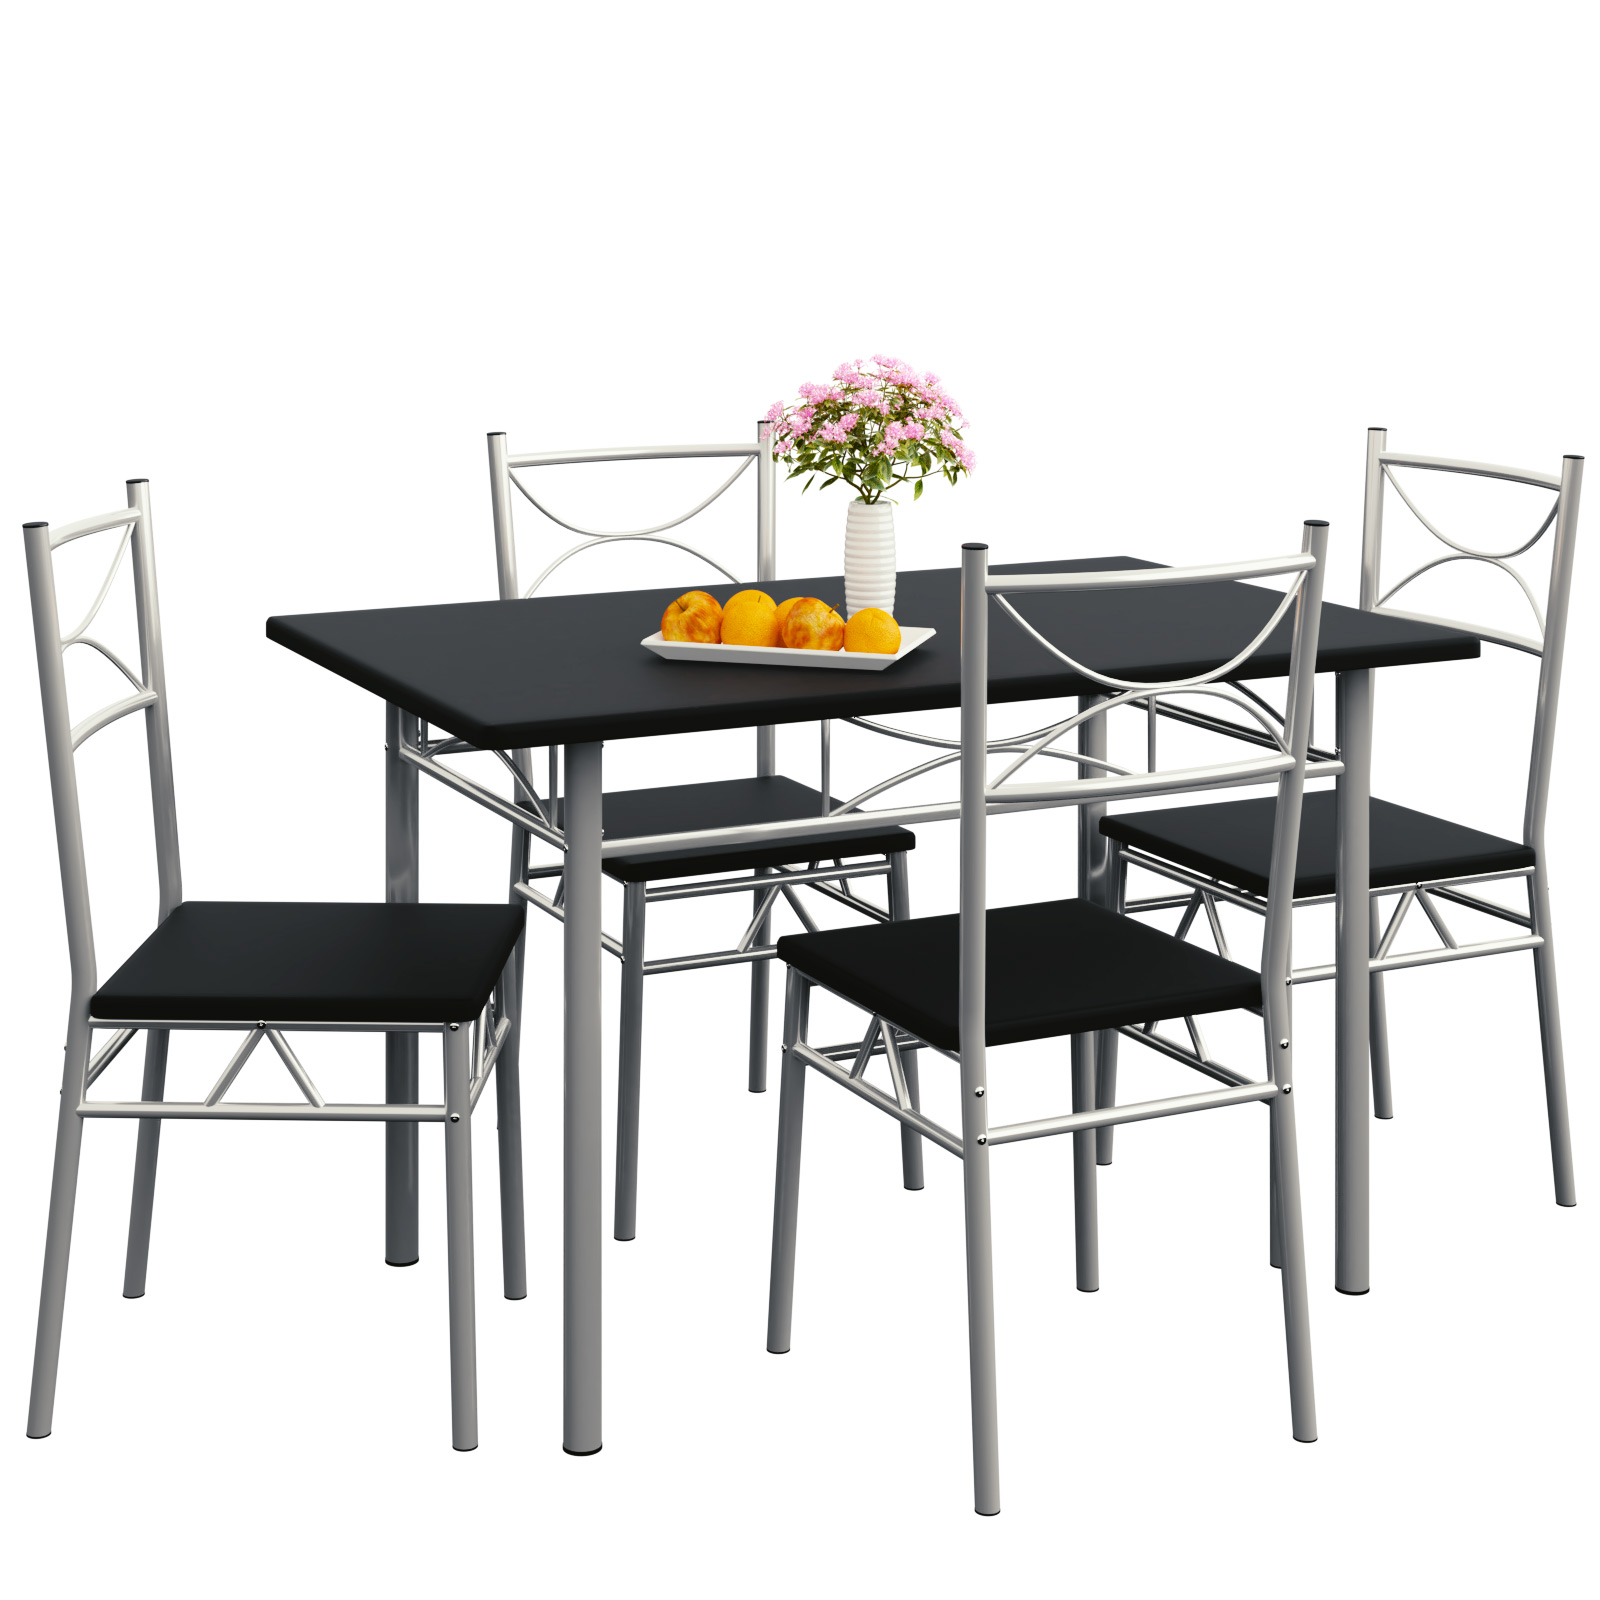 Black And White Dining Table And Chairs: Dining Table And Chairs Set Kitchen 4 Seater White Black